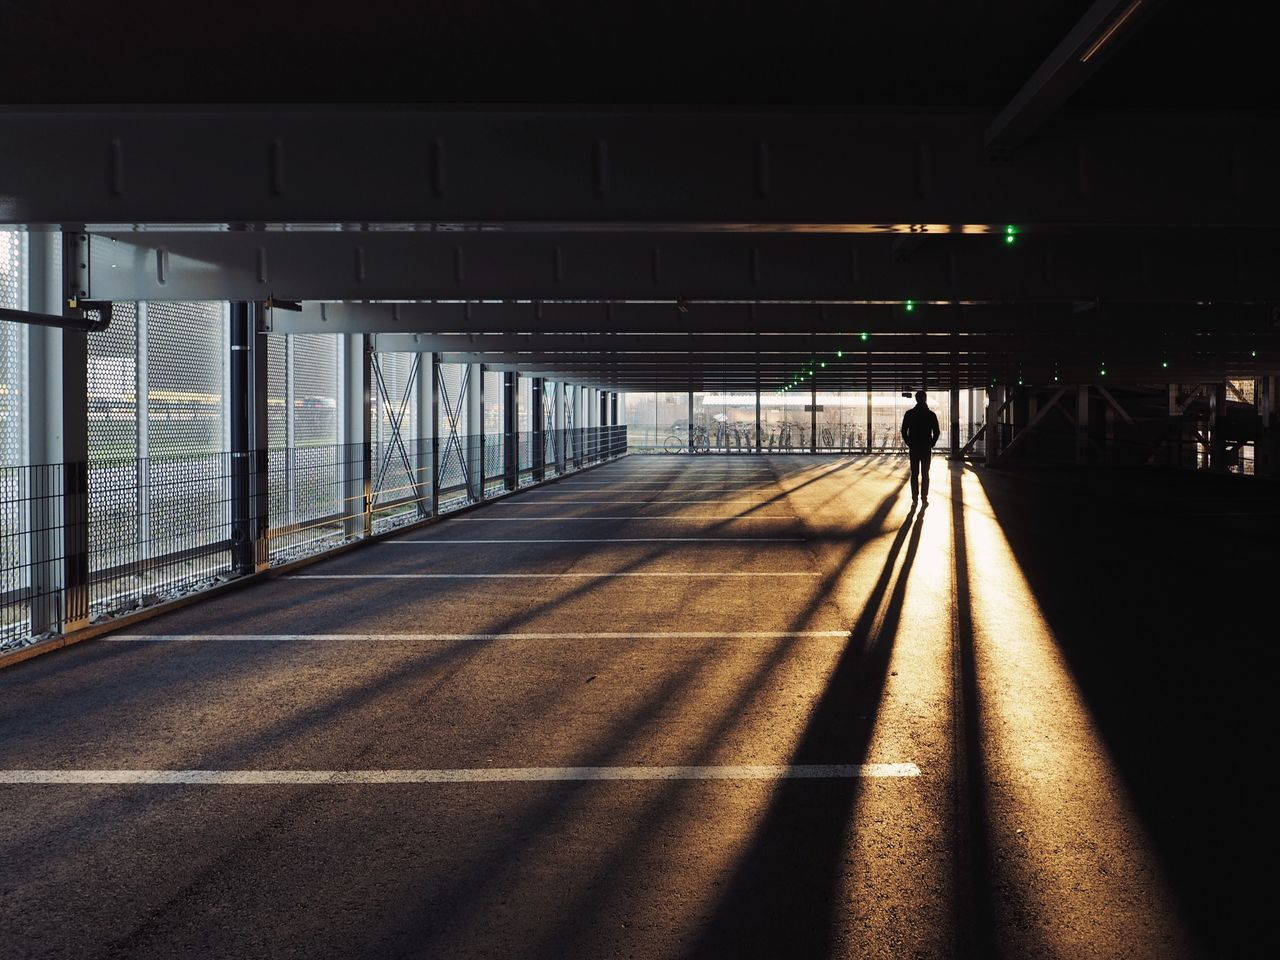 The Way Forward Lifestyles Real People Architecture Day Light And Shadow Parking Sunrise Sunrise Silhouette Urban Landscape Urban Urban Geometry Warm Light Long Shadows at Basel, Switzerland